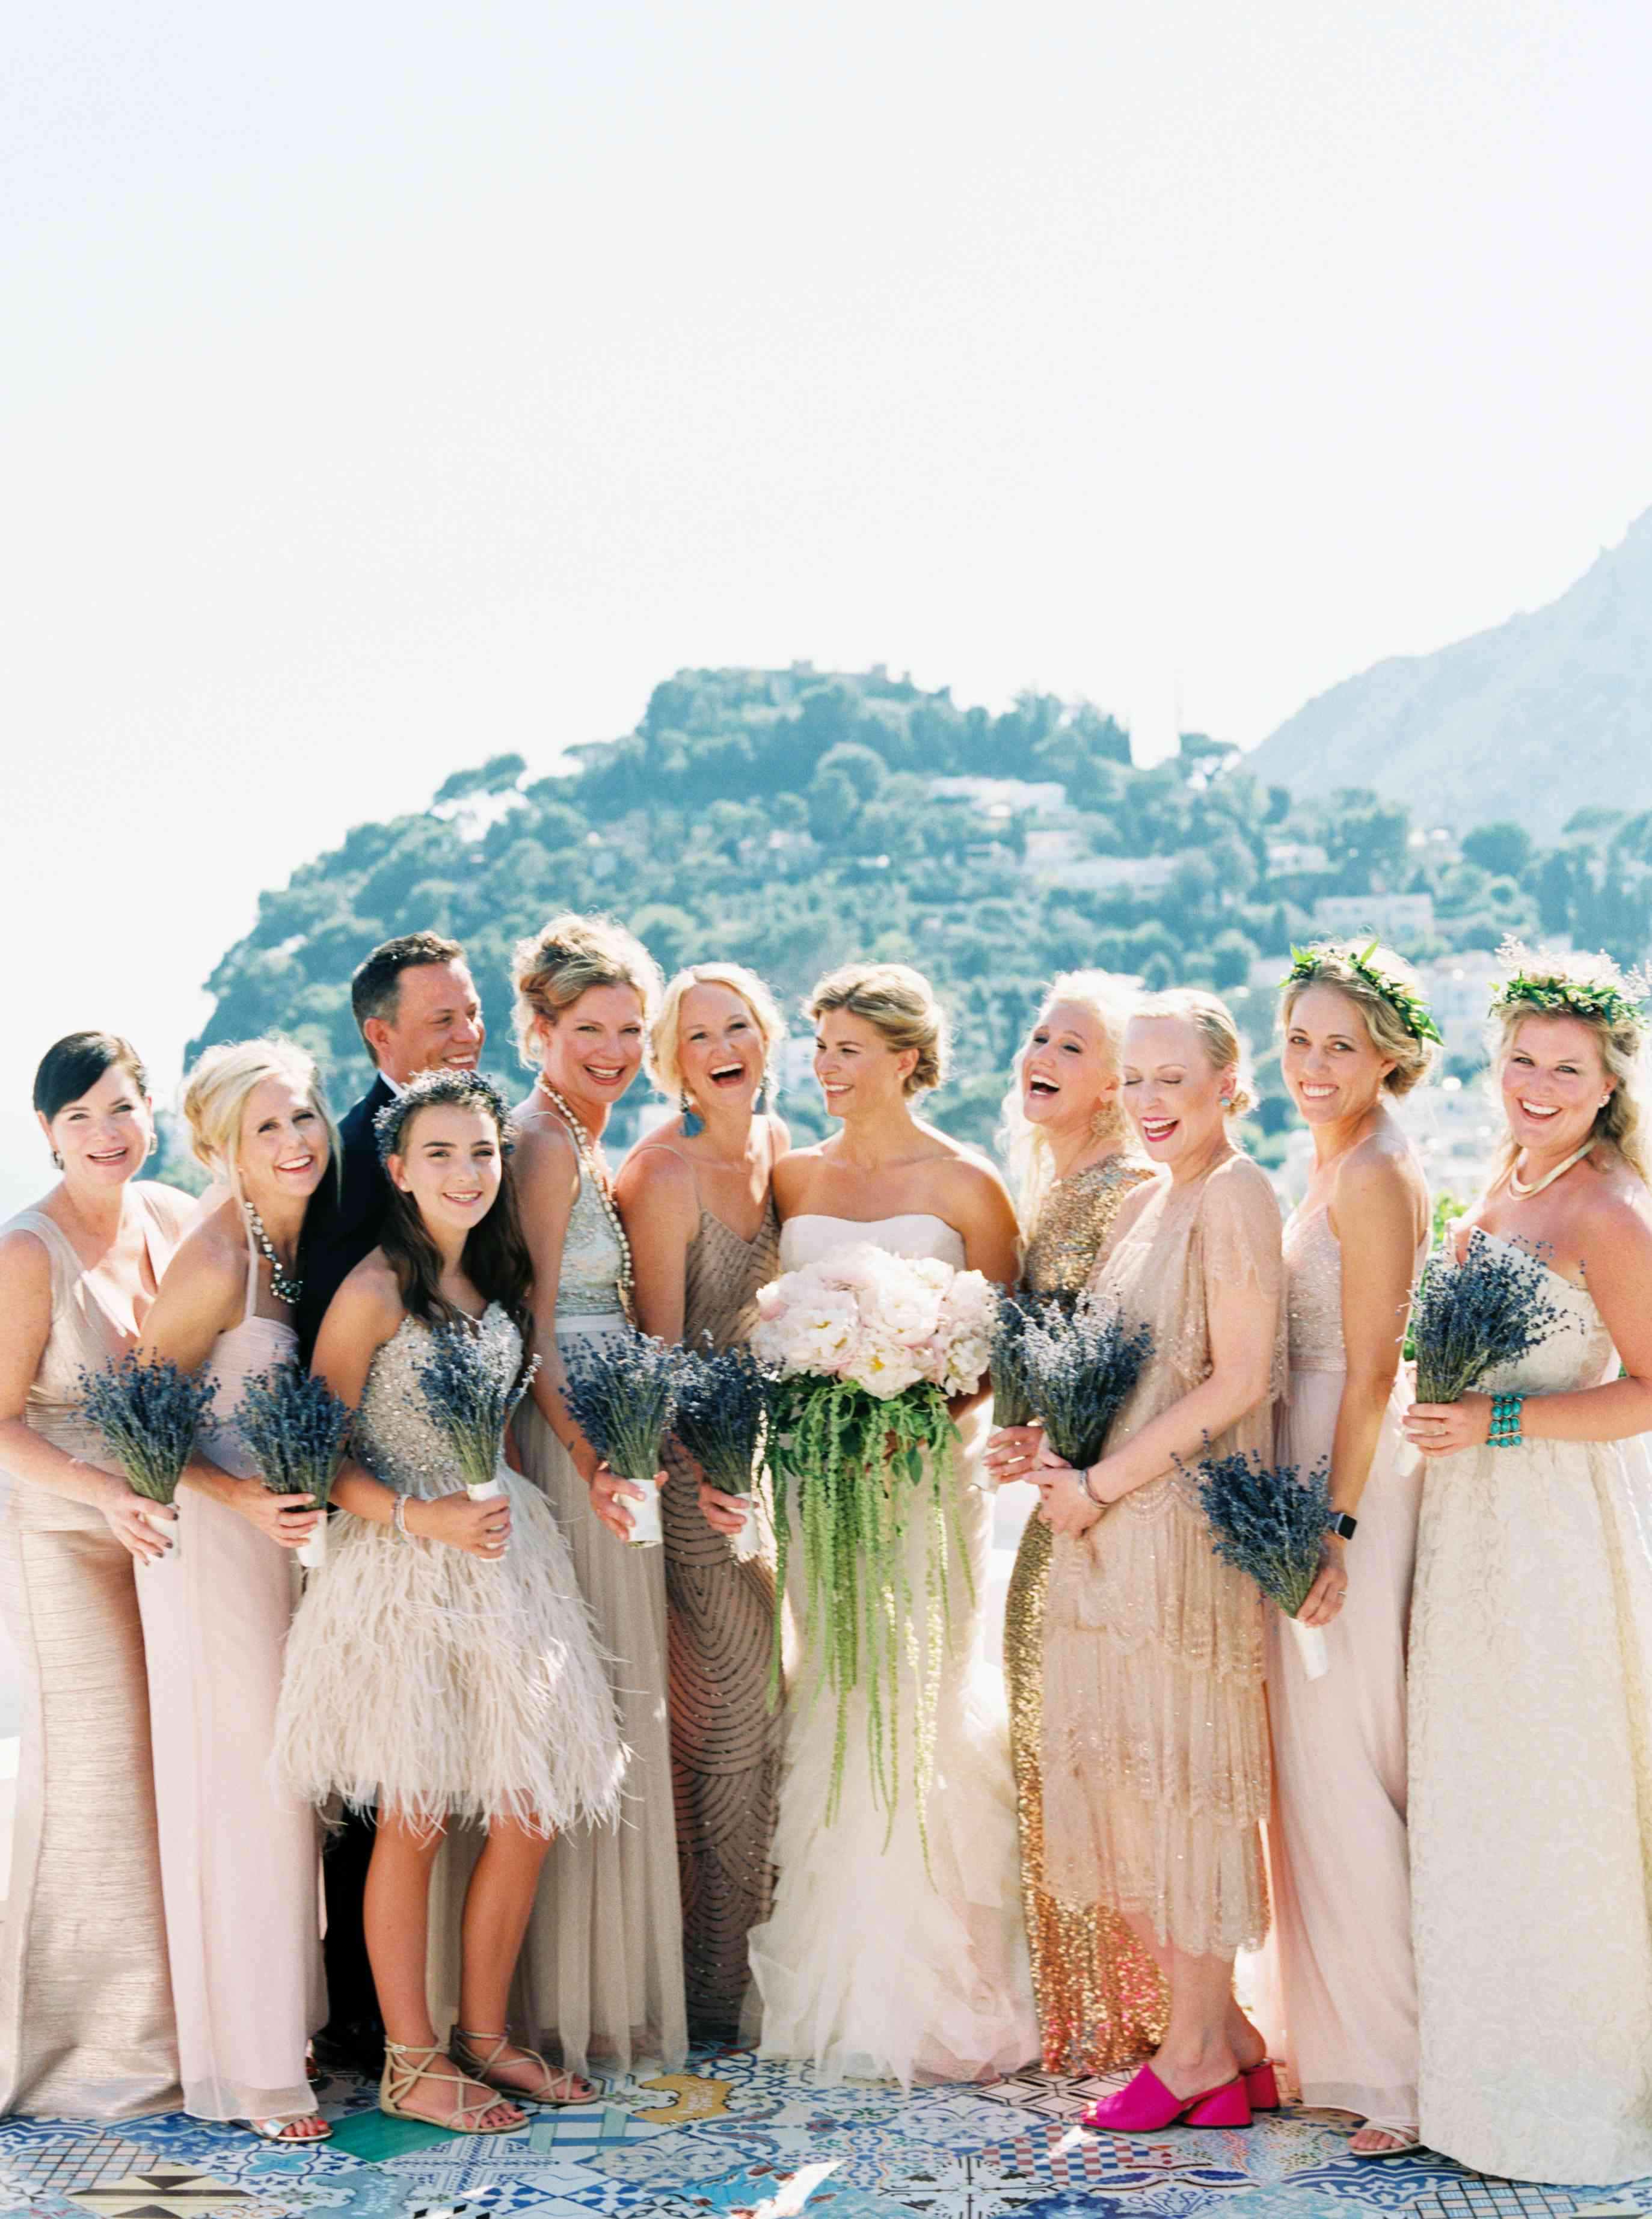 The 3 Best Places To Rent Bridesmaid Dresses